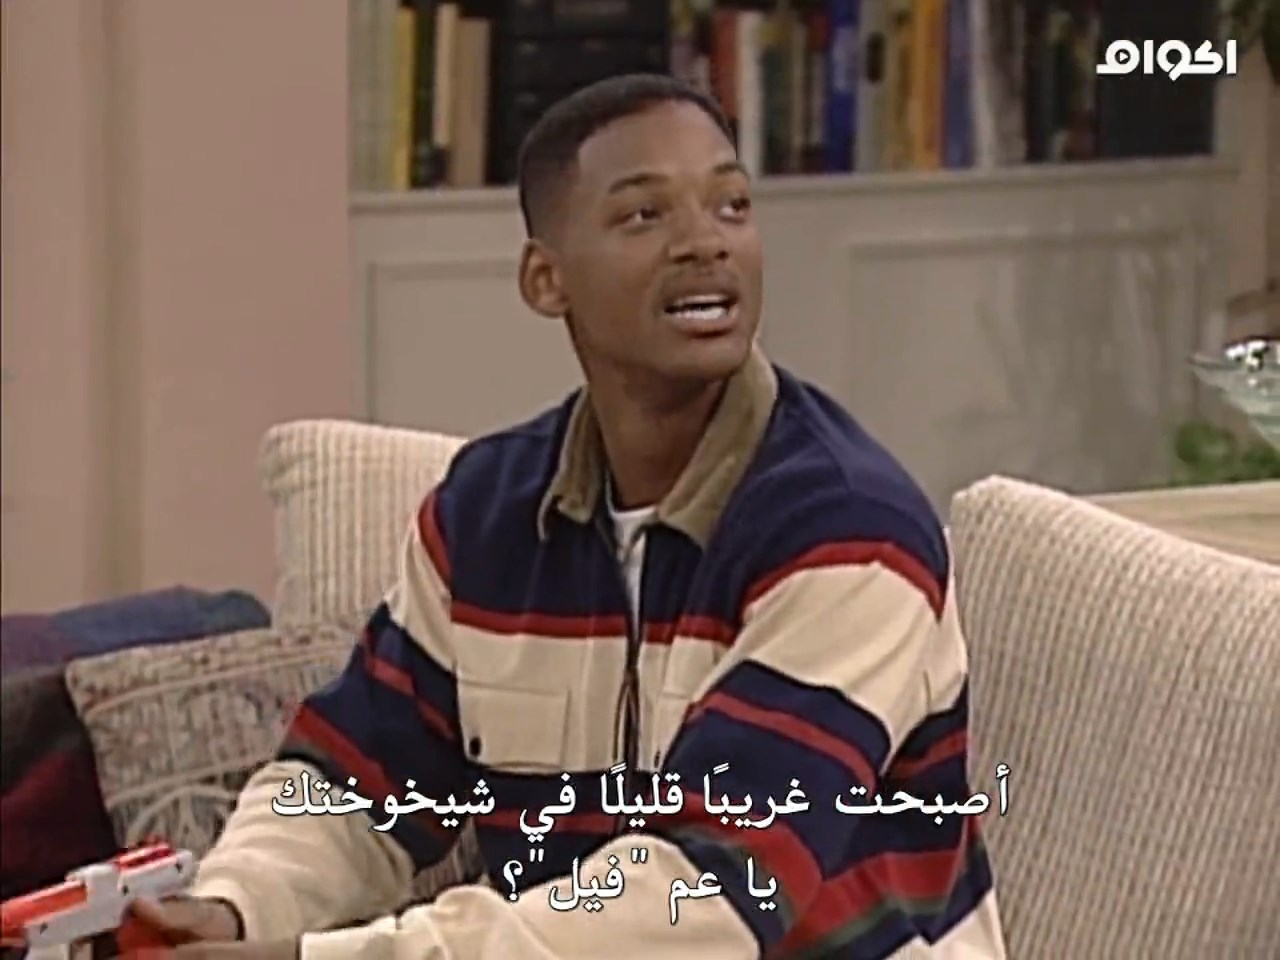 The Fresh Prince of Bel-Air,The Fresh Prince of Bel-Air S06,The Fresh Prince of Bel-Air Season 6,The Fresh Prince of Bel-Air مترجم,The Fresh Prince of Bel-Air Will Smith,ويل سميث